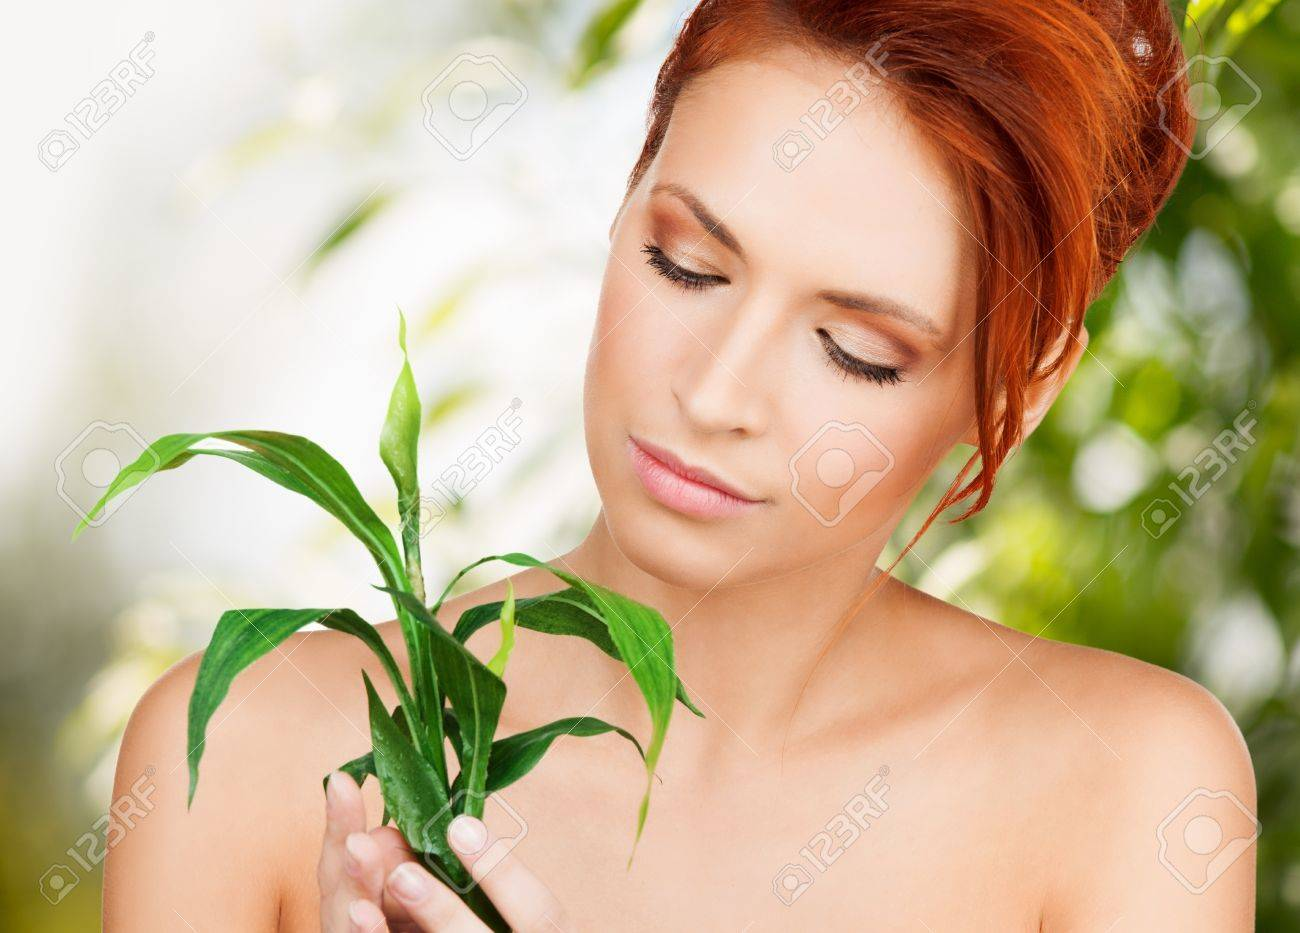 beauty and eco cosmetology concept - beautiful woman on nature with green sprout Stock Photo - 20859542